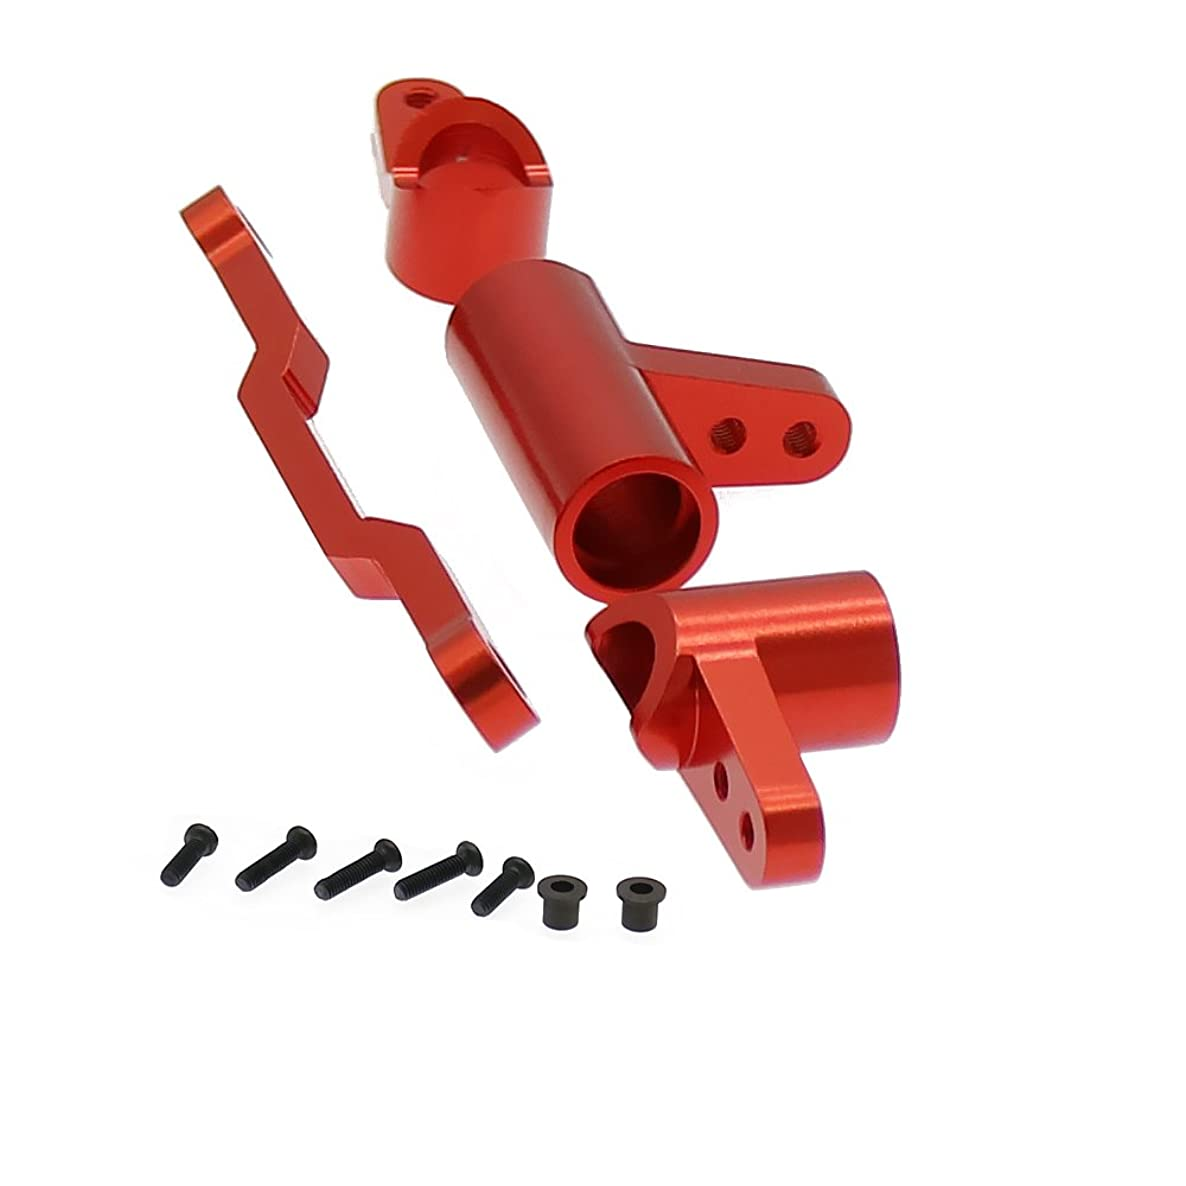 RCAWD Servo Saver Complete Set Aluminum Alloy for Rc Hobby Model Car 1:16 HQ731 HQ732 HQ733 HQ734 Buggy Big Foot Truck Rally Car 1set(Red)